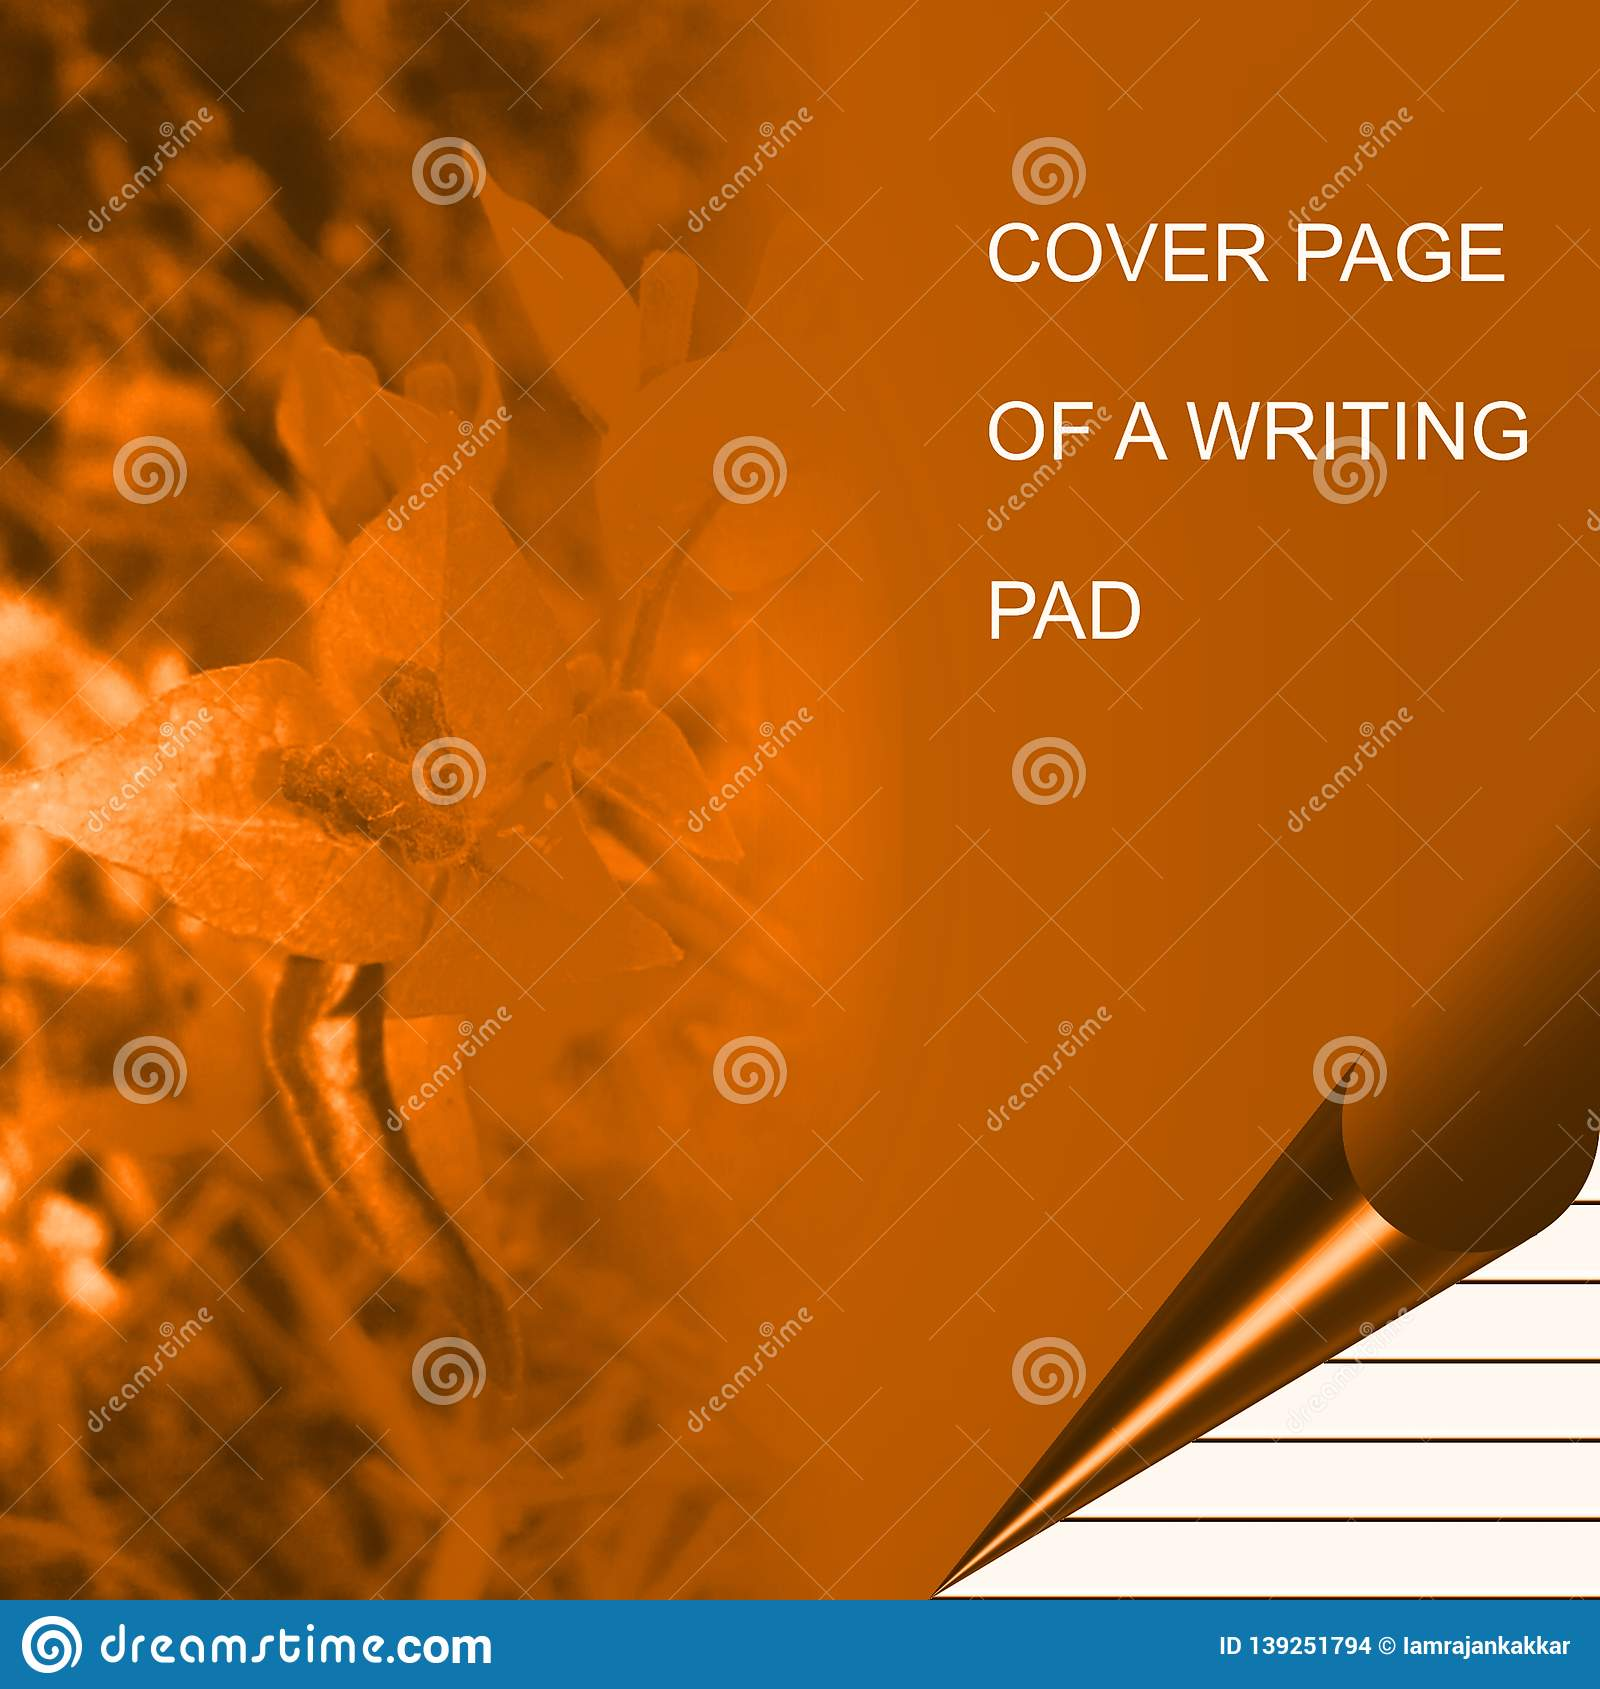 Golden color writing pad shaded with lighting effect computer generated background image and wallpaper design